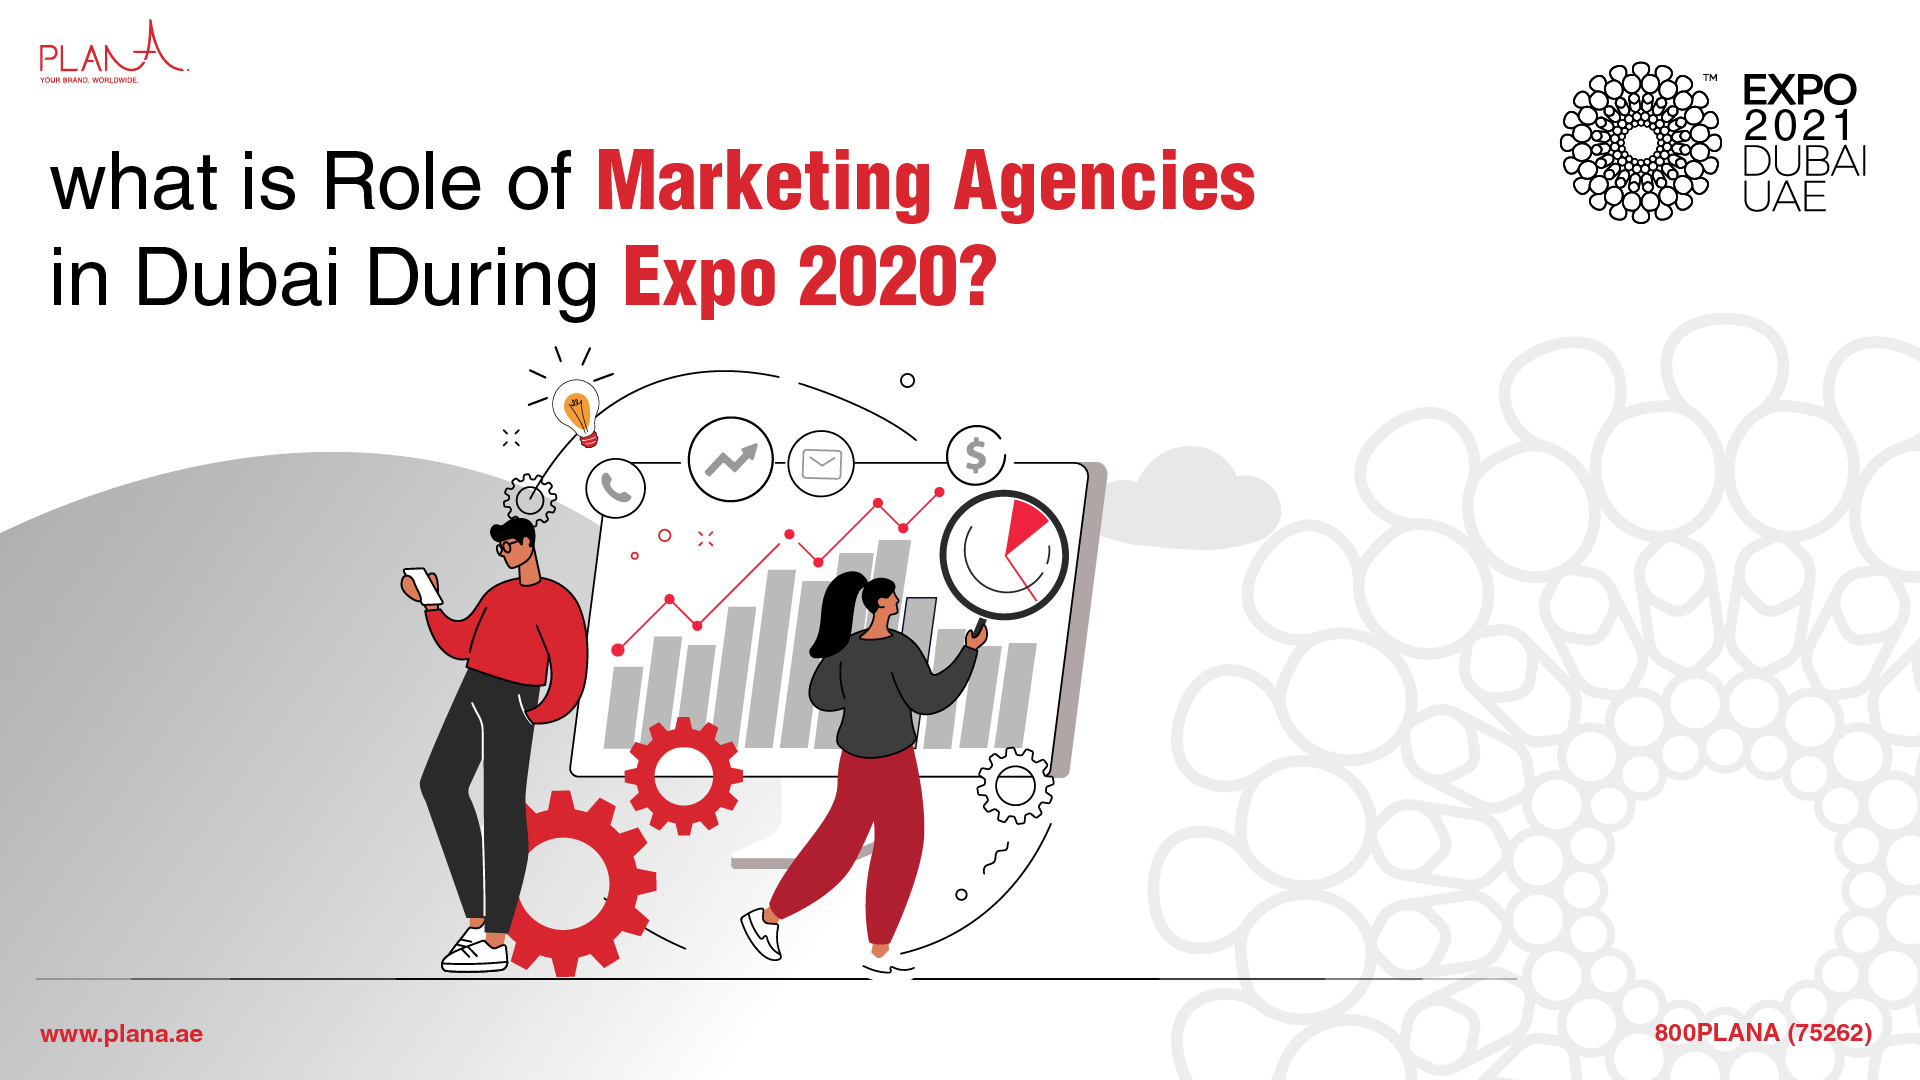 what is Role of Marketing Agencies in Dubai During Expo 2020?